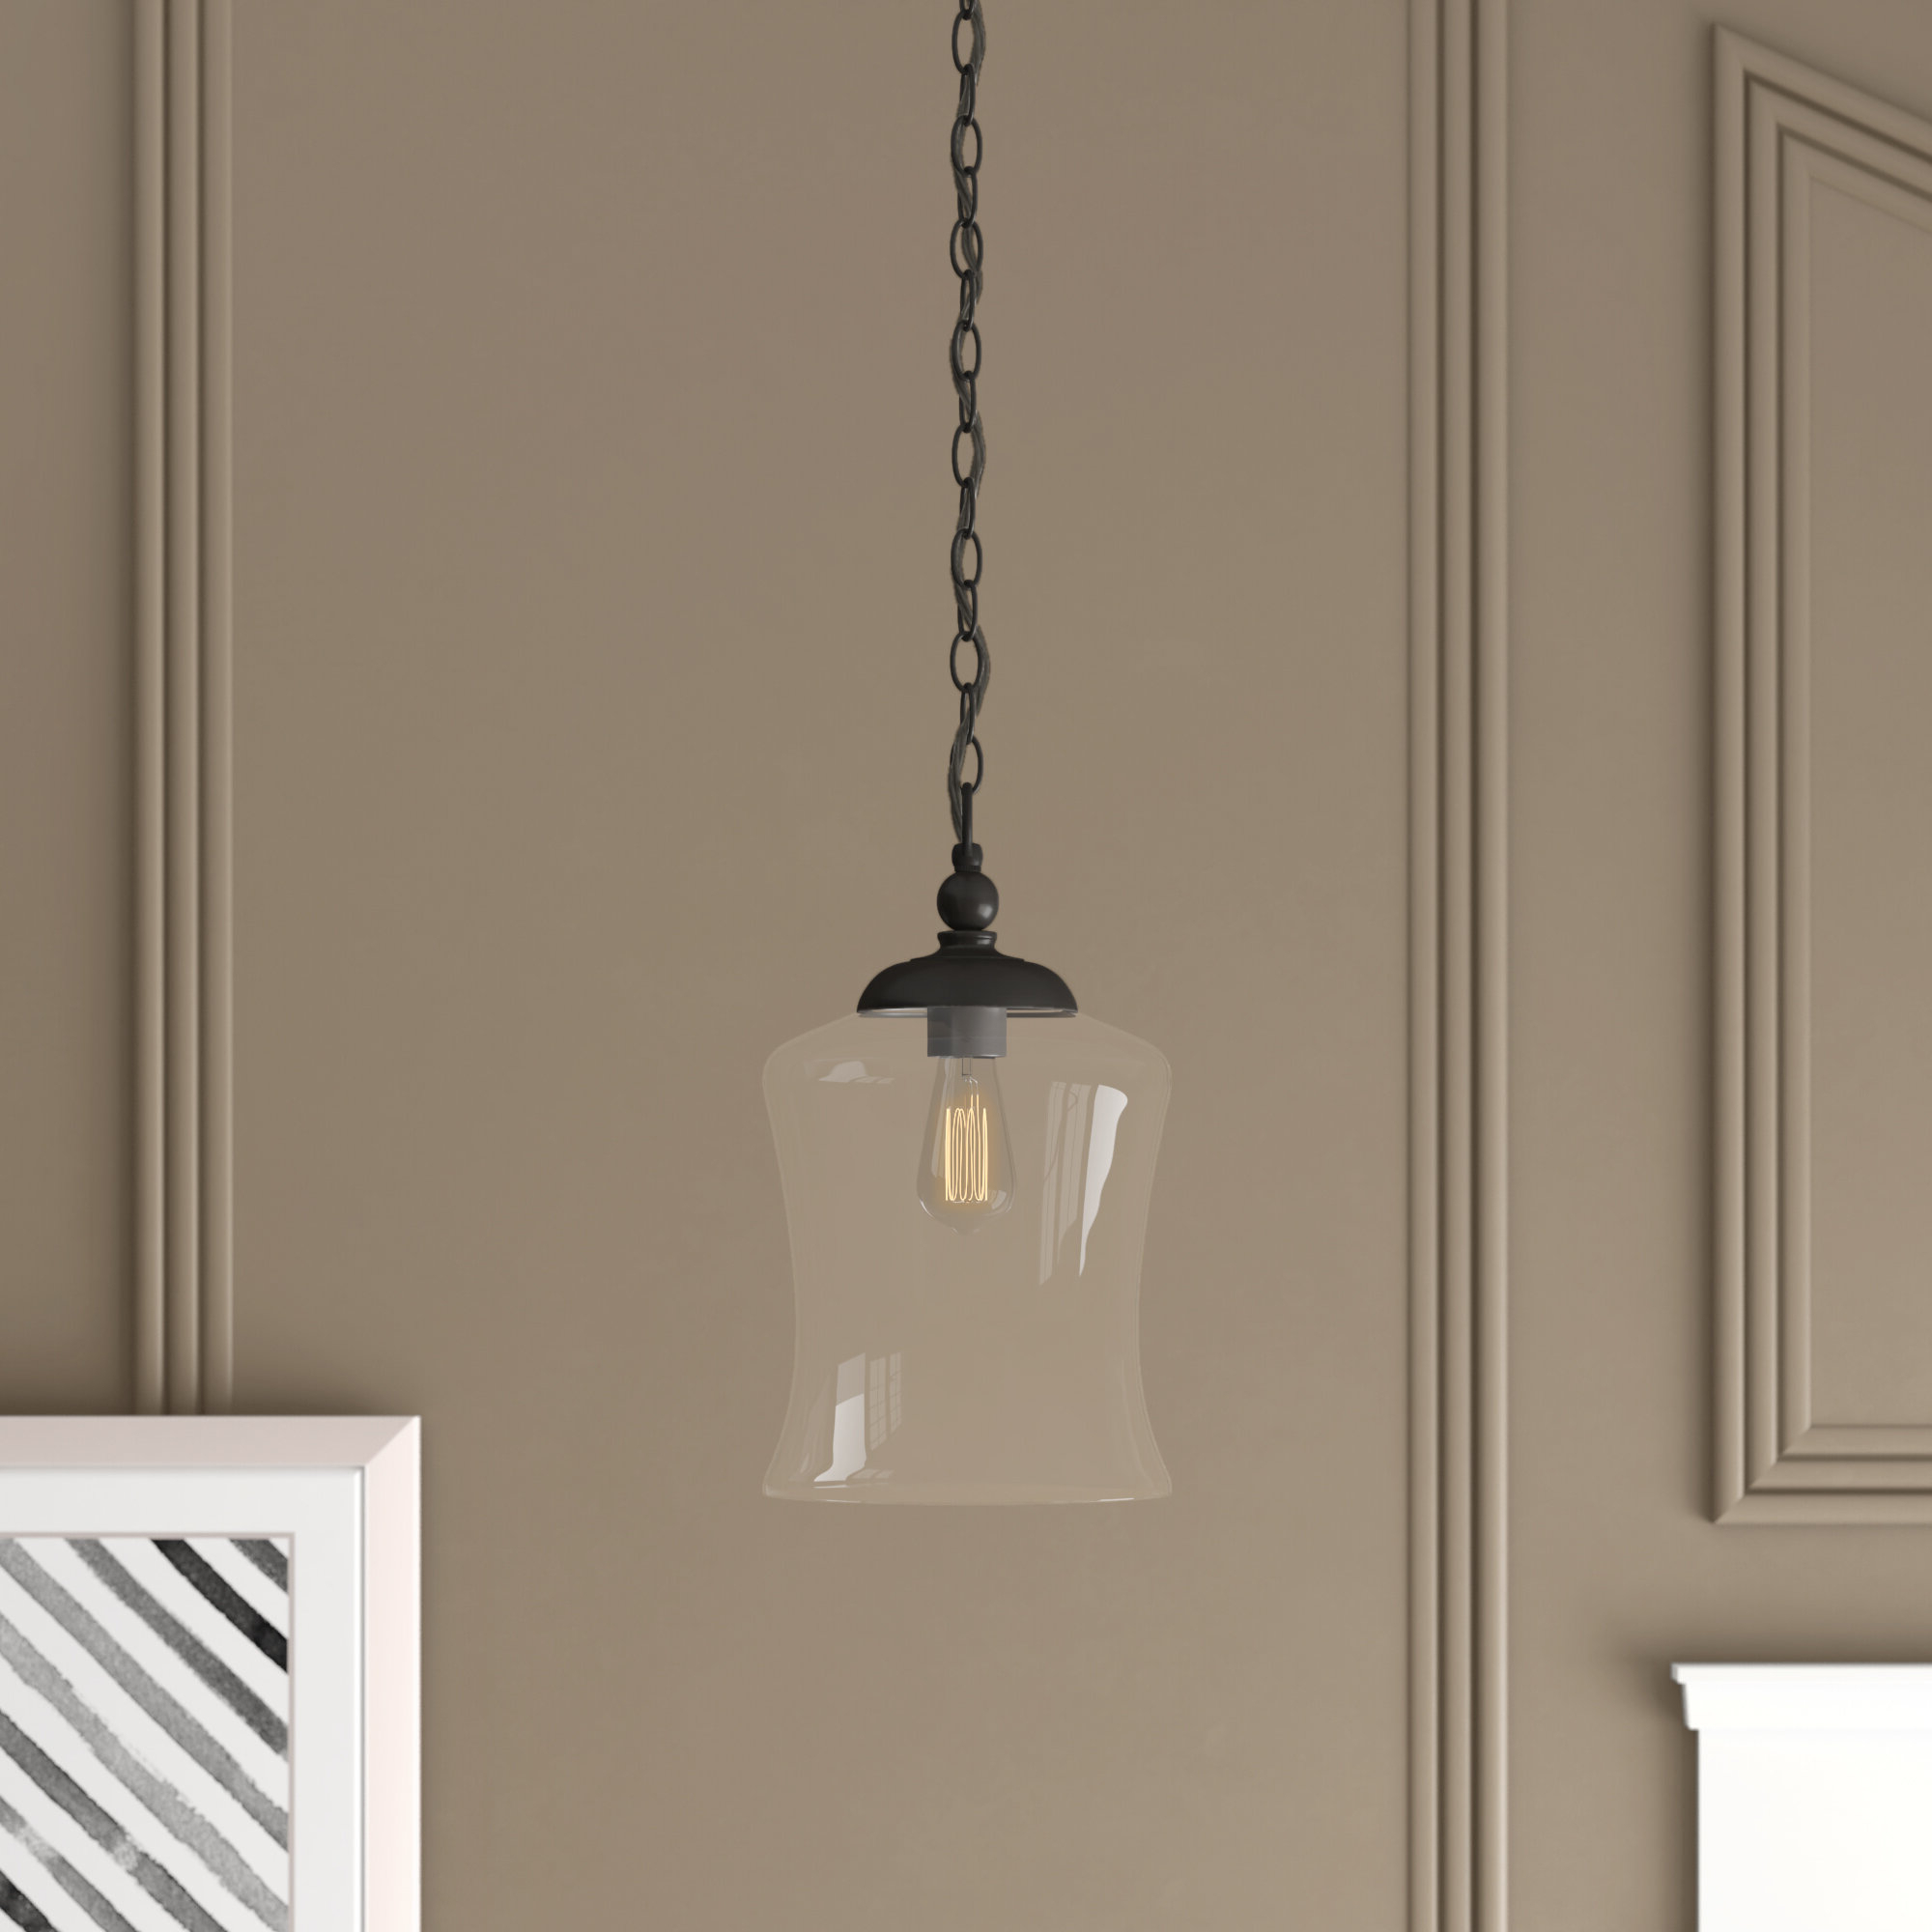 Wentzville 1 Light Single Bell Pendant With Regard To Famous Nolan 1 Light Single Cylinder Pendants (View 20 of 20)